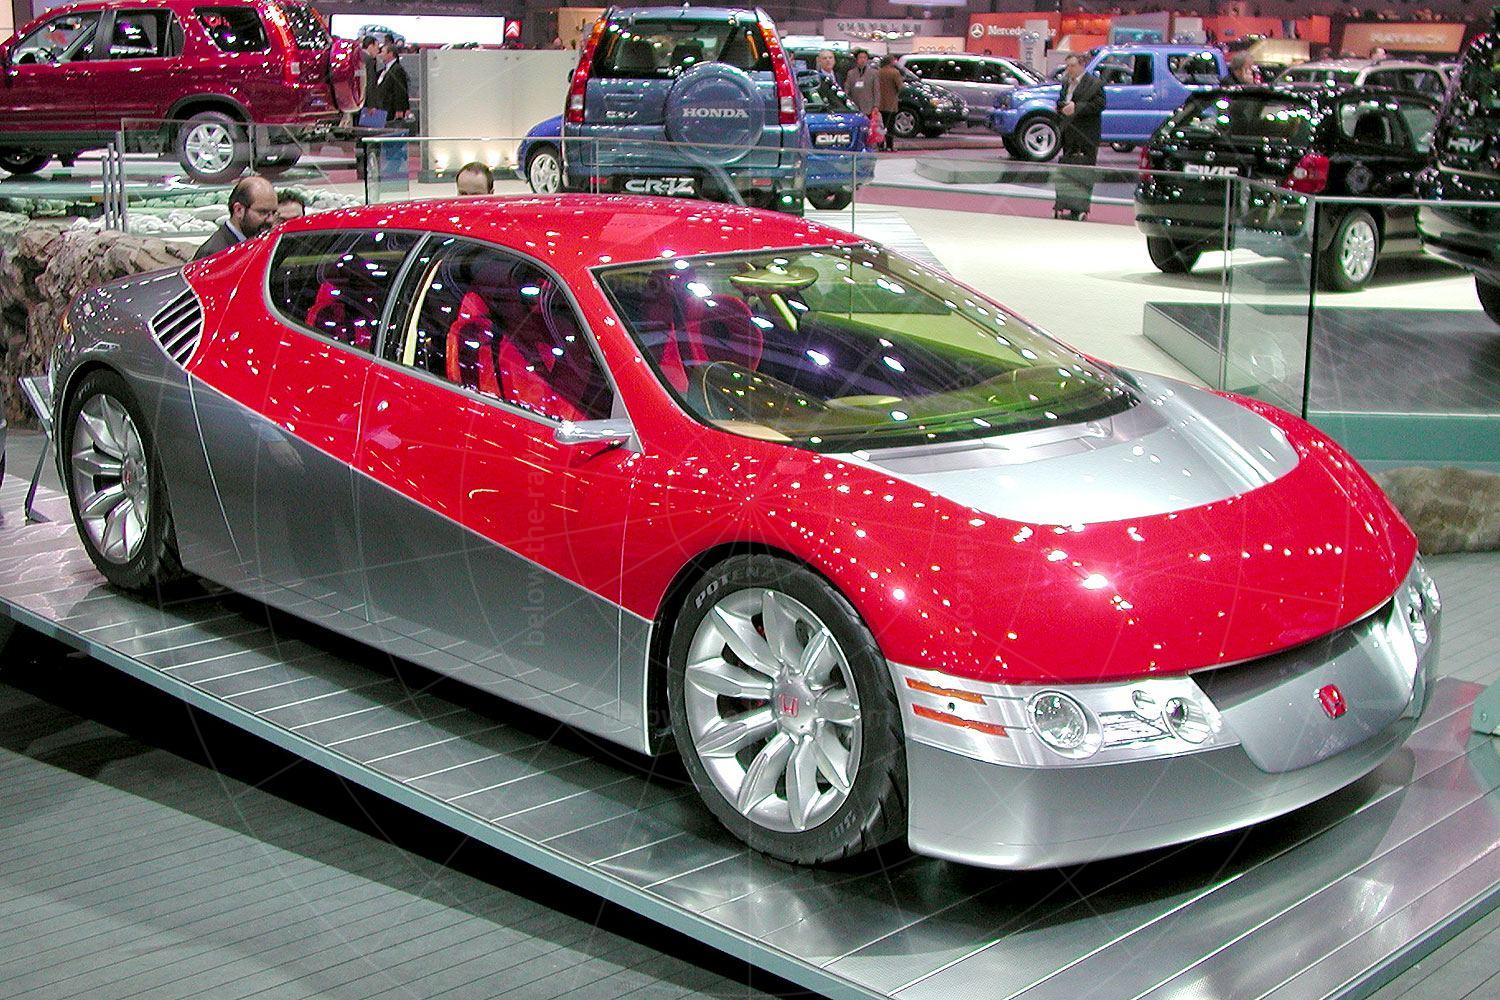 Honda Dualnote concept at the 2002 Geneva Salon